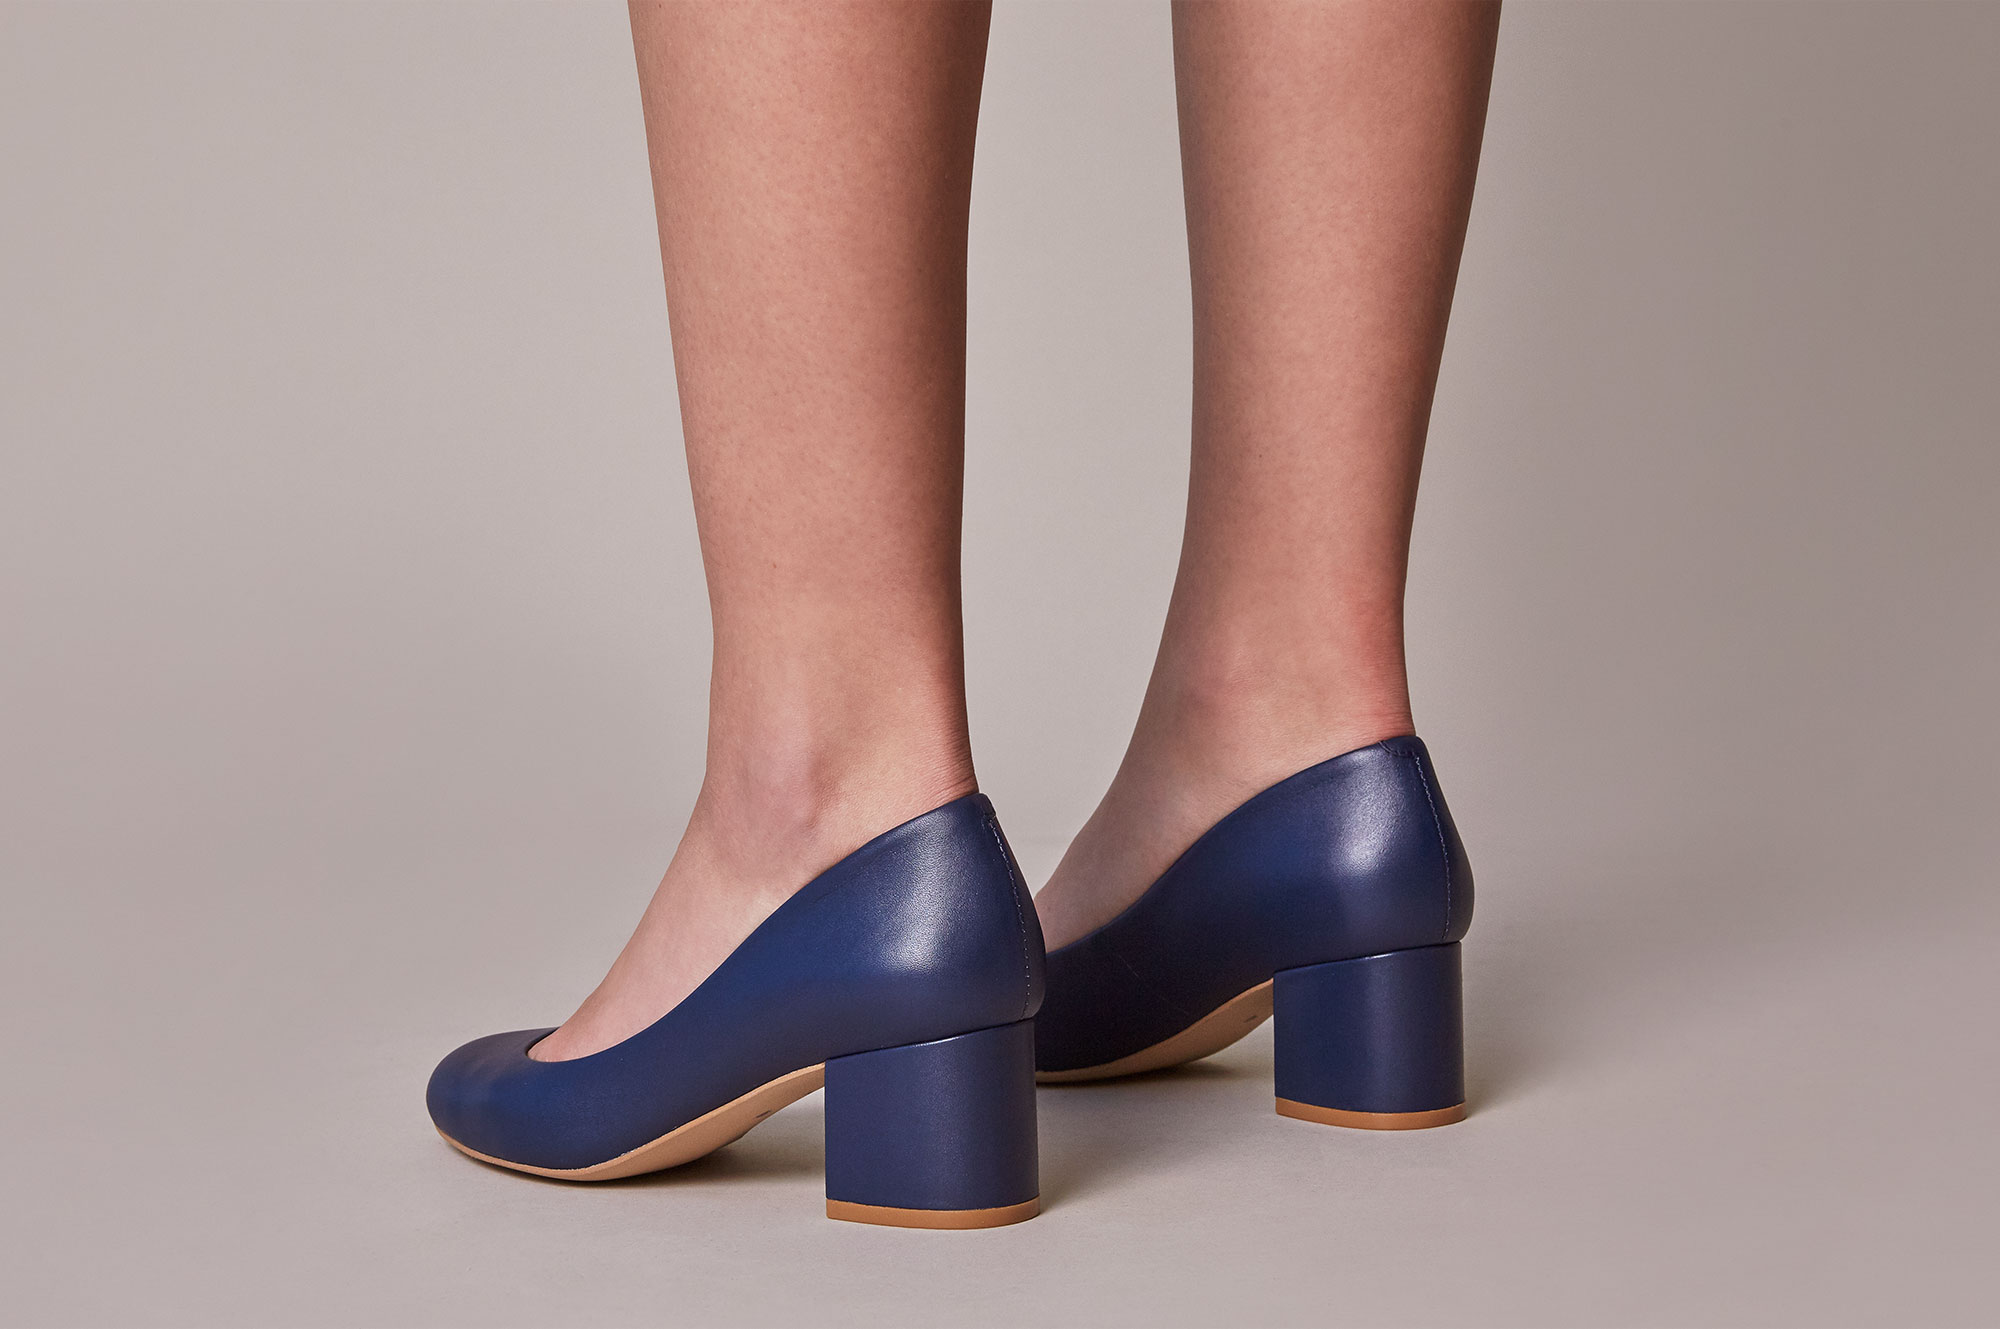 Design your own shoes — navy leather kitten heel height